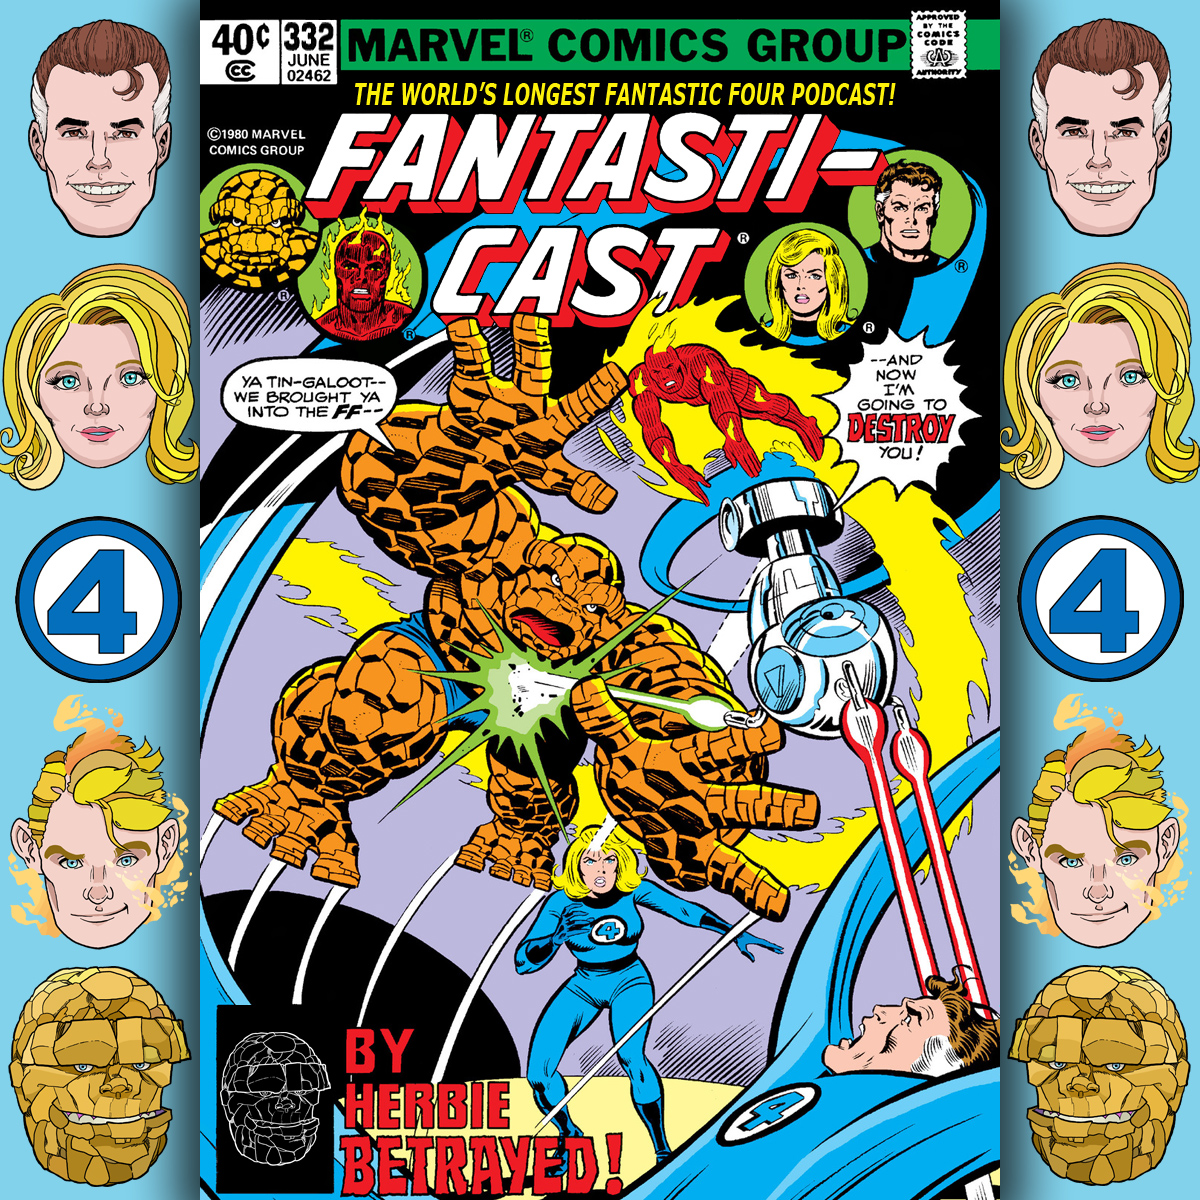 The Fantasticast Episode 332